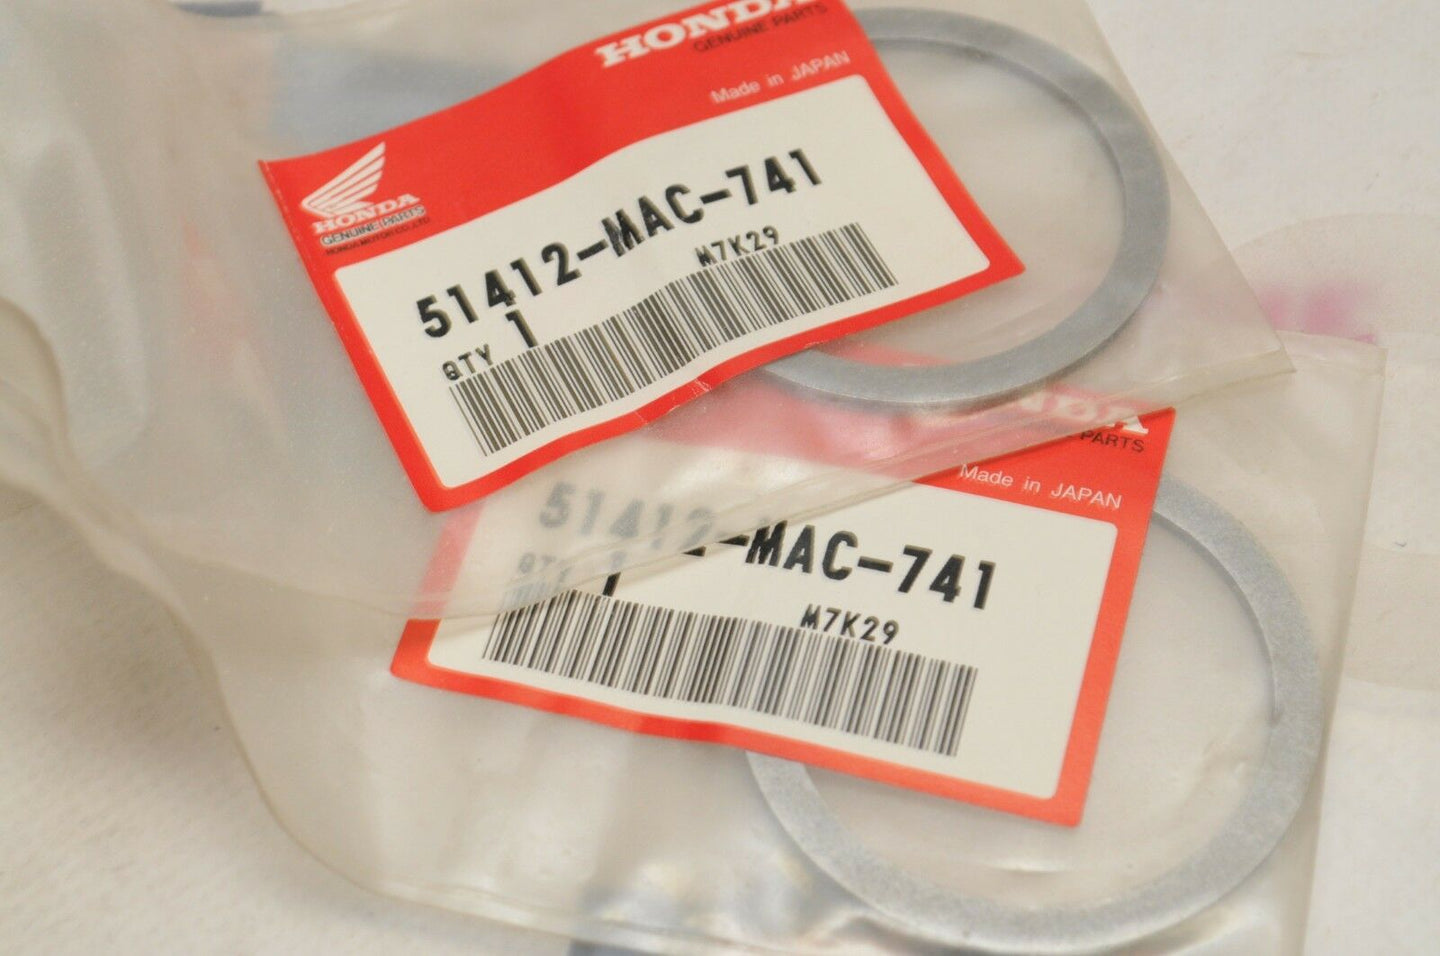 NOS OEM Honda 51412-MAC-741 Qty:2 RING,BACK-UP CR250R CR500R XR650R CR125R